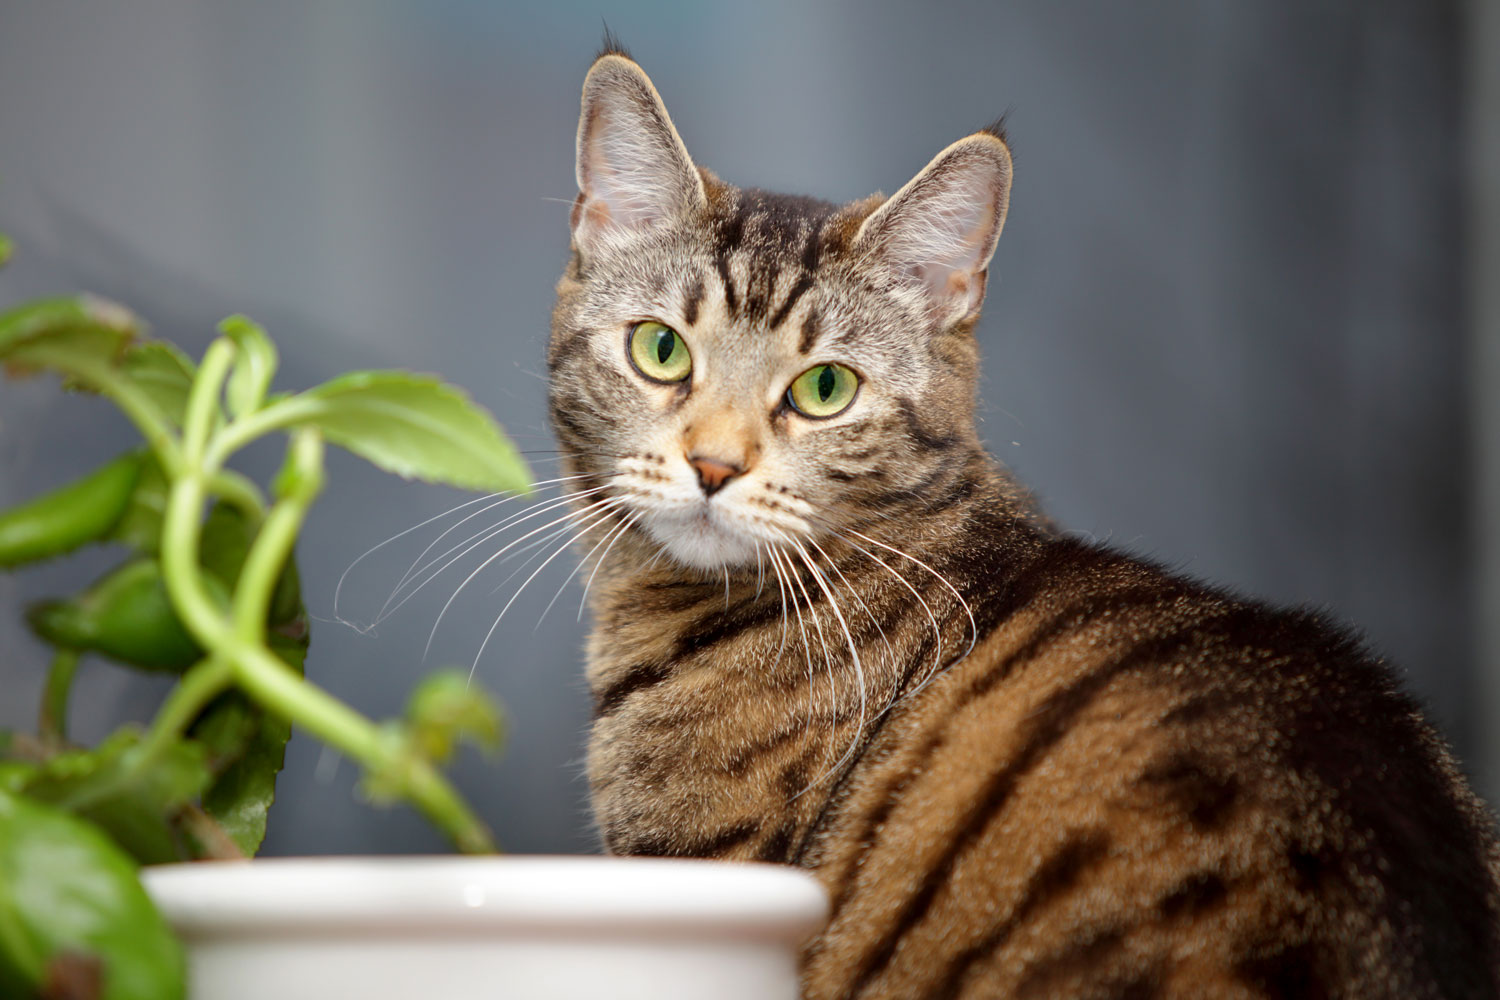 A tabby cat starring at the camera